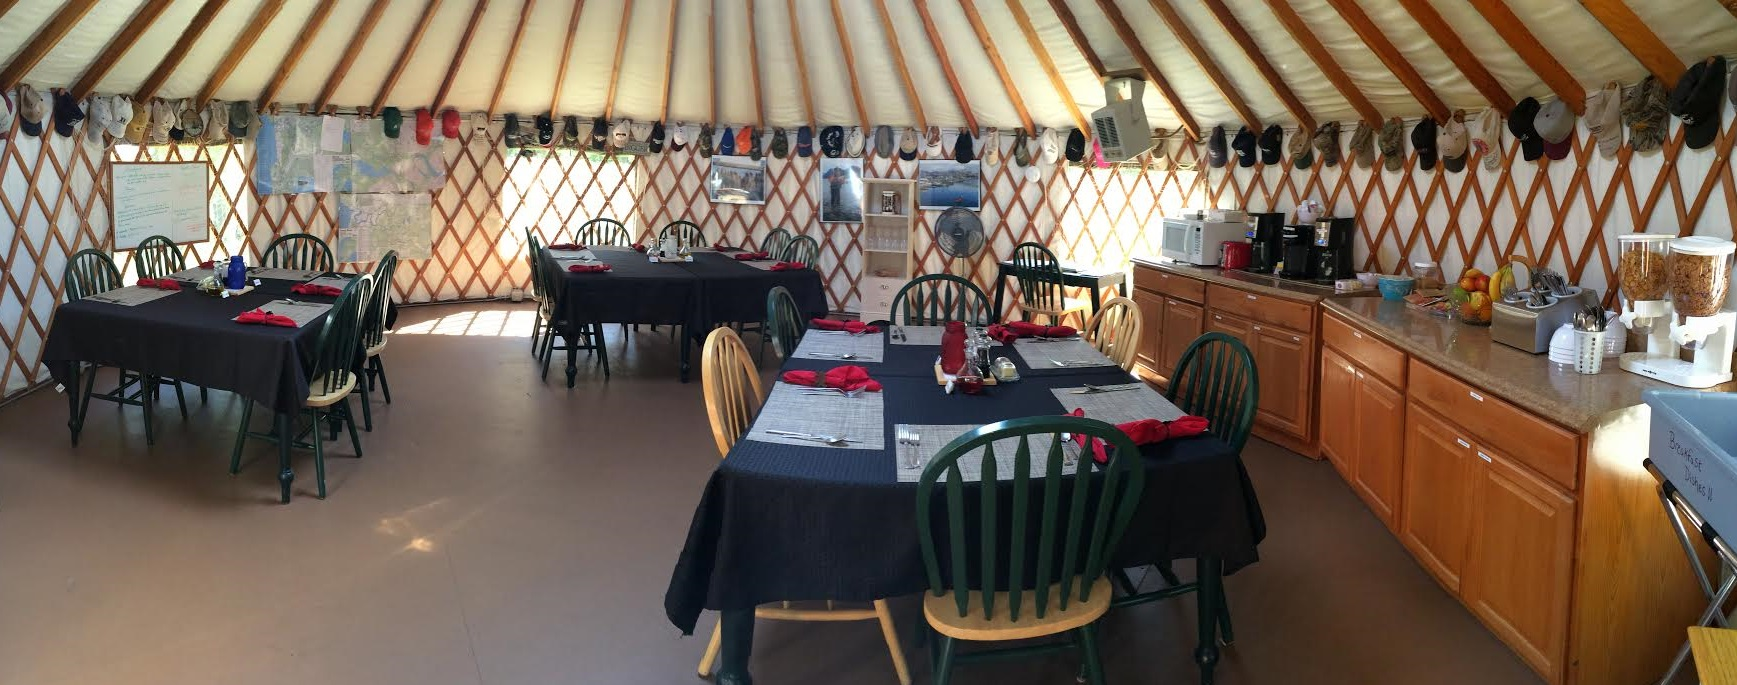 Inside view of Alaska Hooksetters Dining Hall yurt, where guest will gather for meals on their trip.